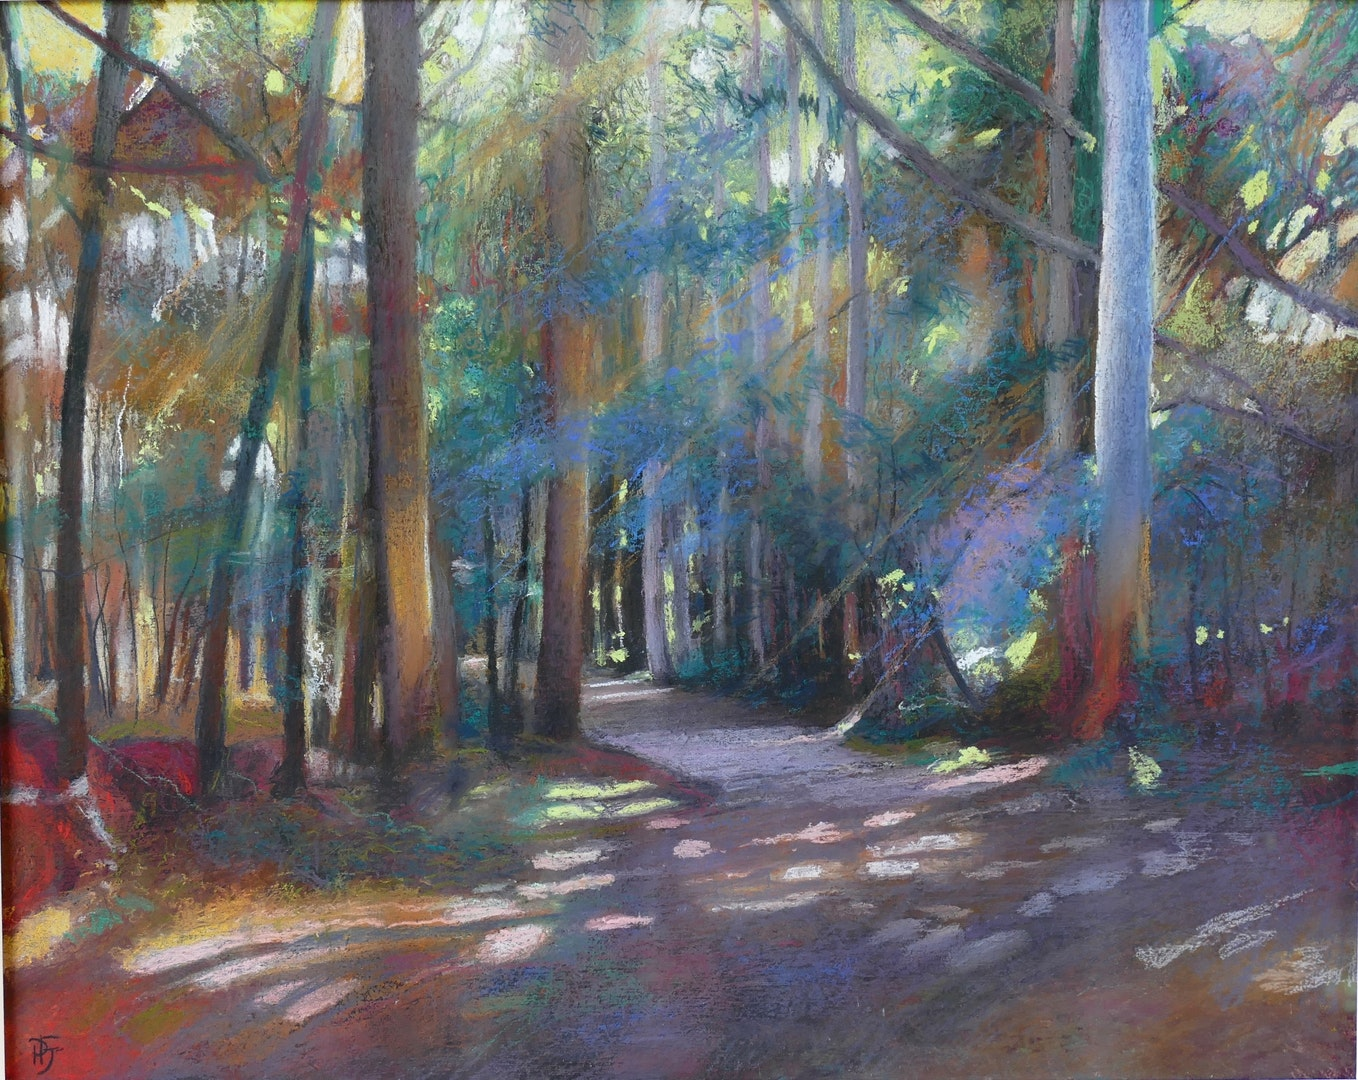 'Santiago Eucalyptus Forests', Penelope Fulljames, Pastel on panel, 40 x 50 cm